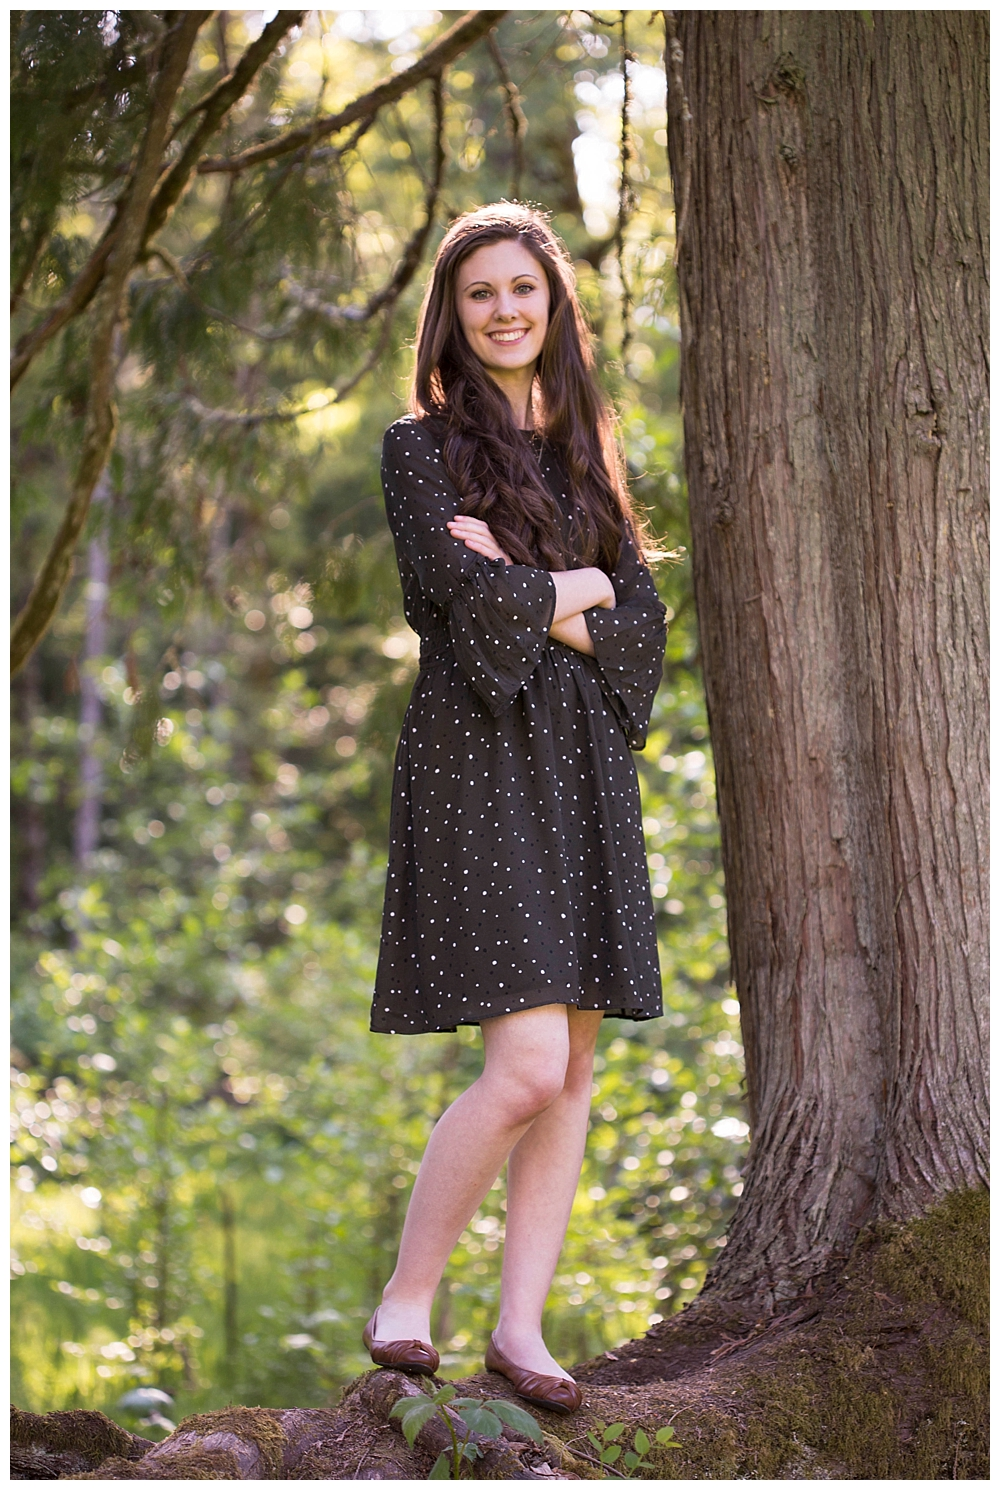 Bellingham Senior Photos in the woods.